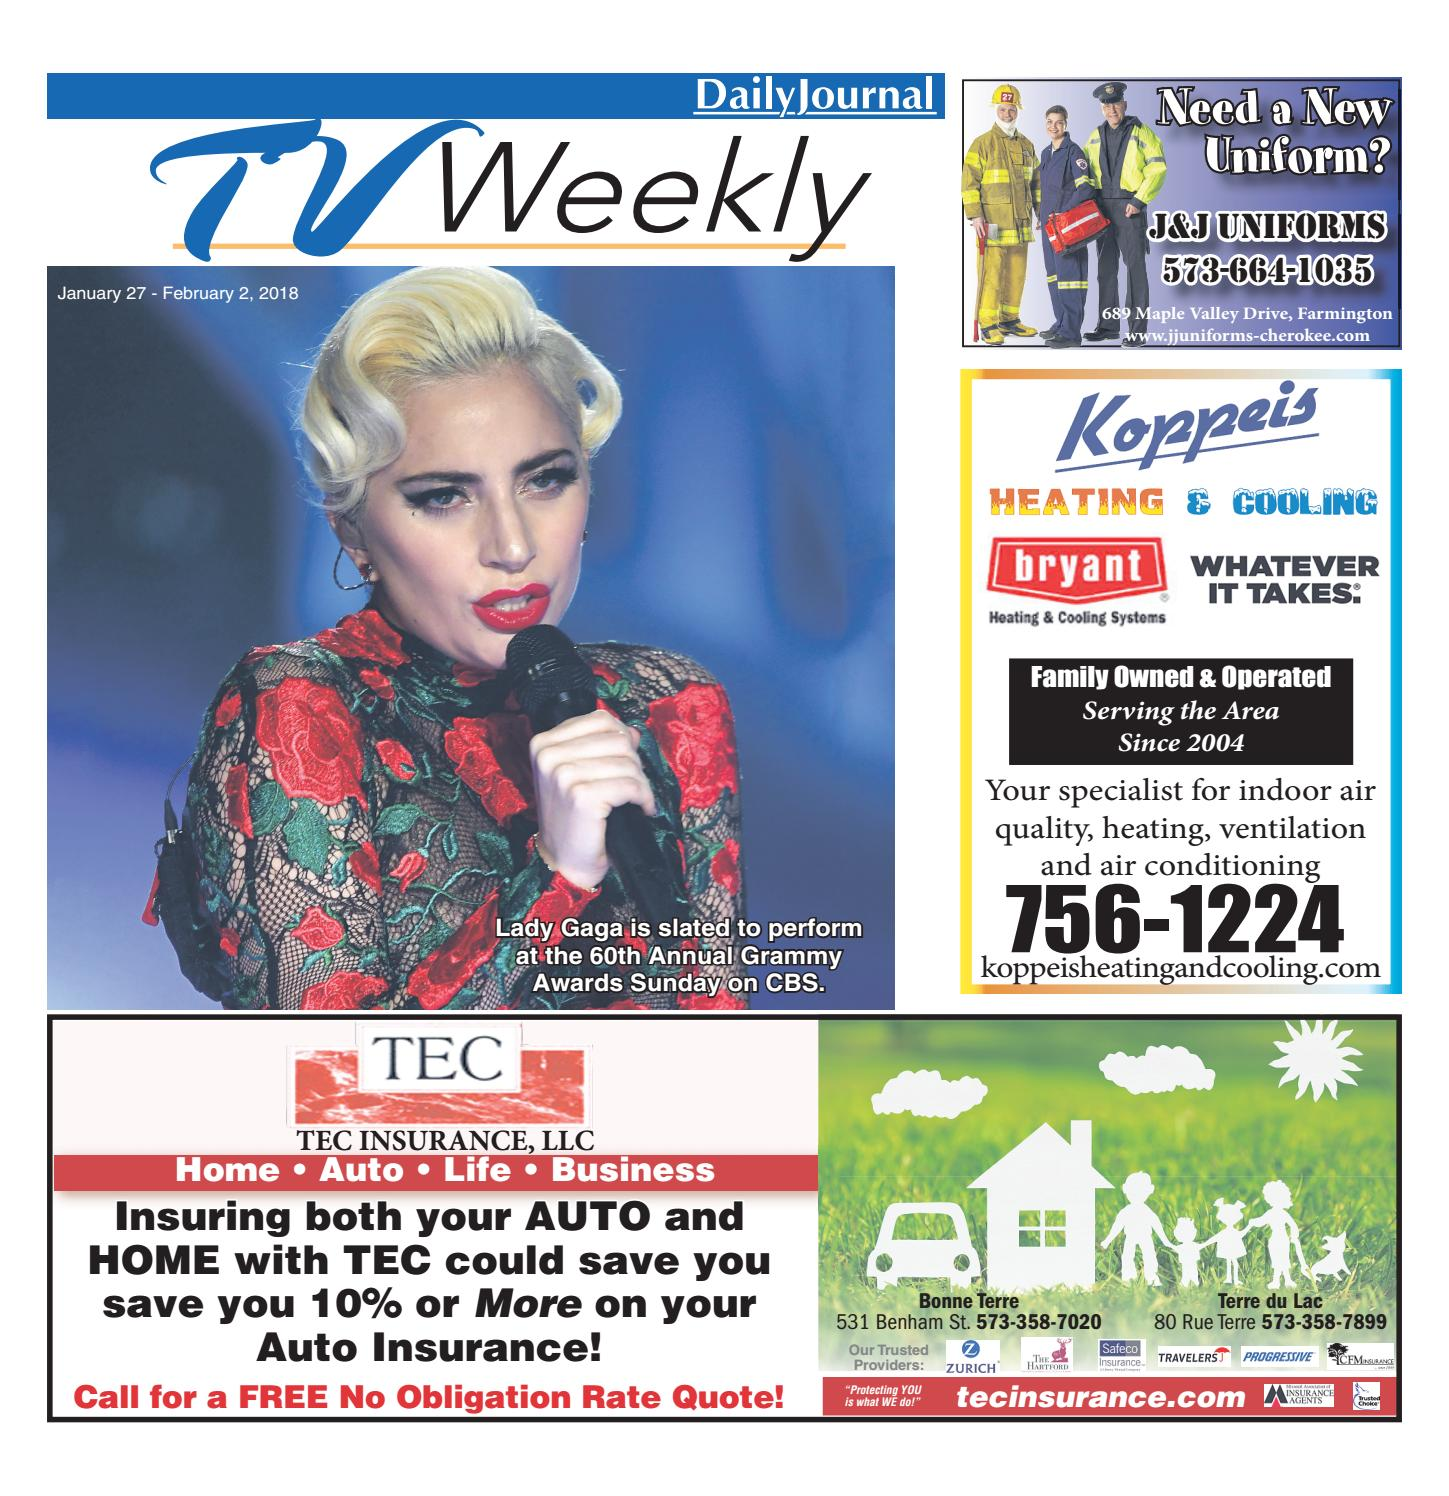 tvweekly-january_27-february_2_2018 by daily journal online - issuu